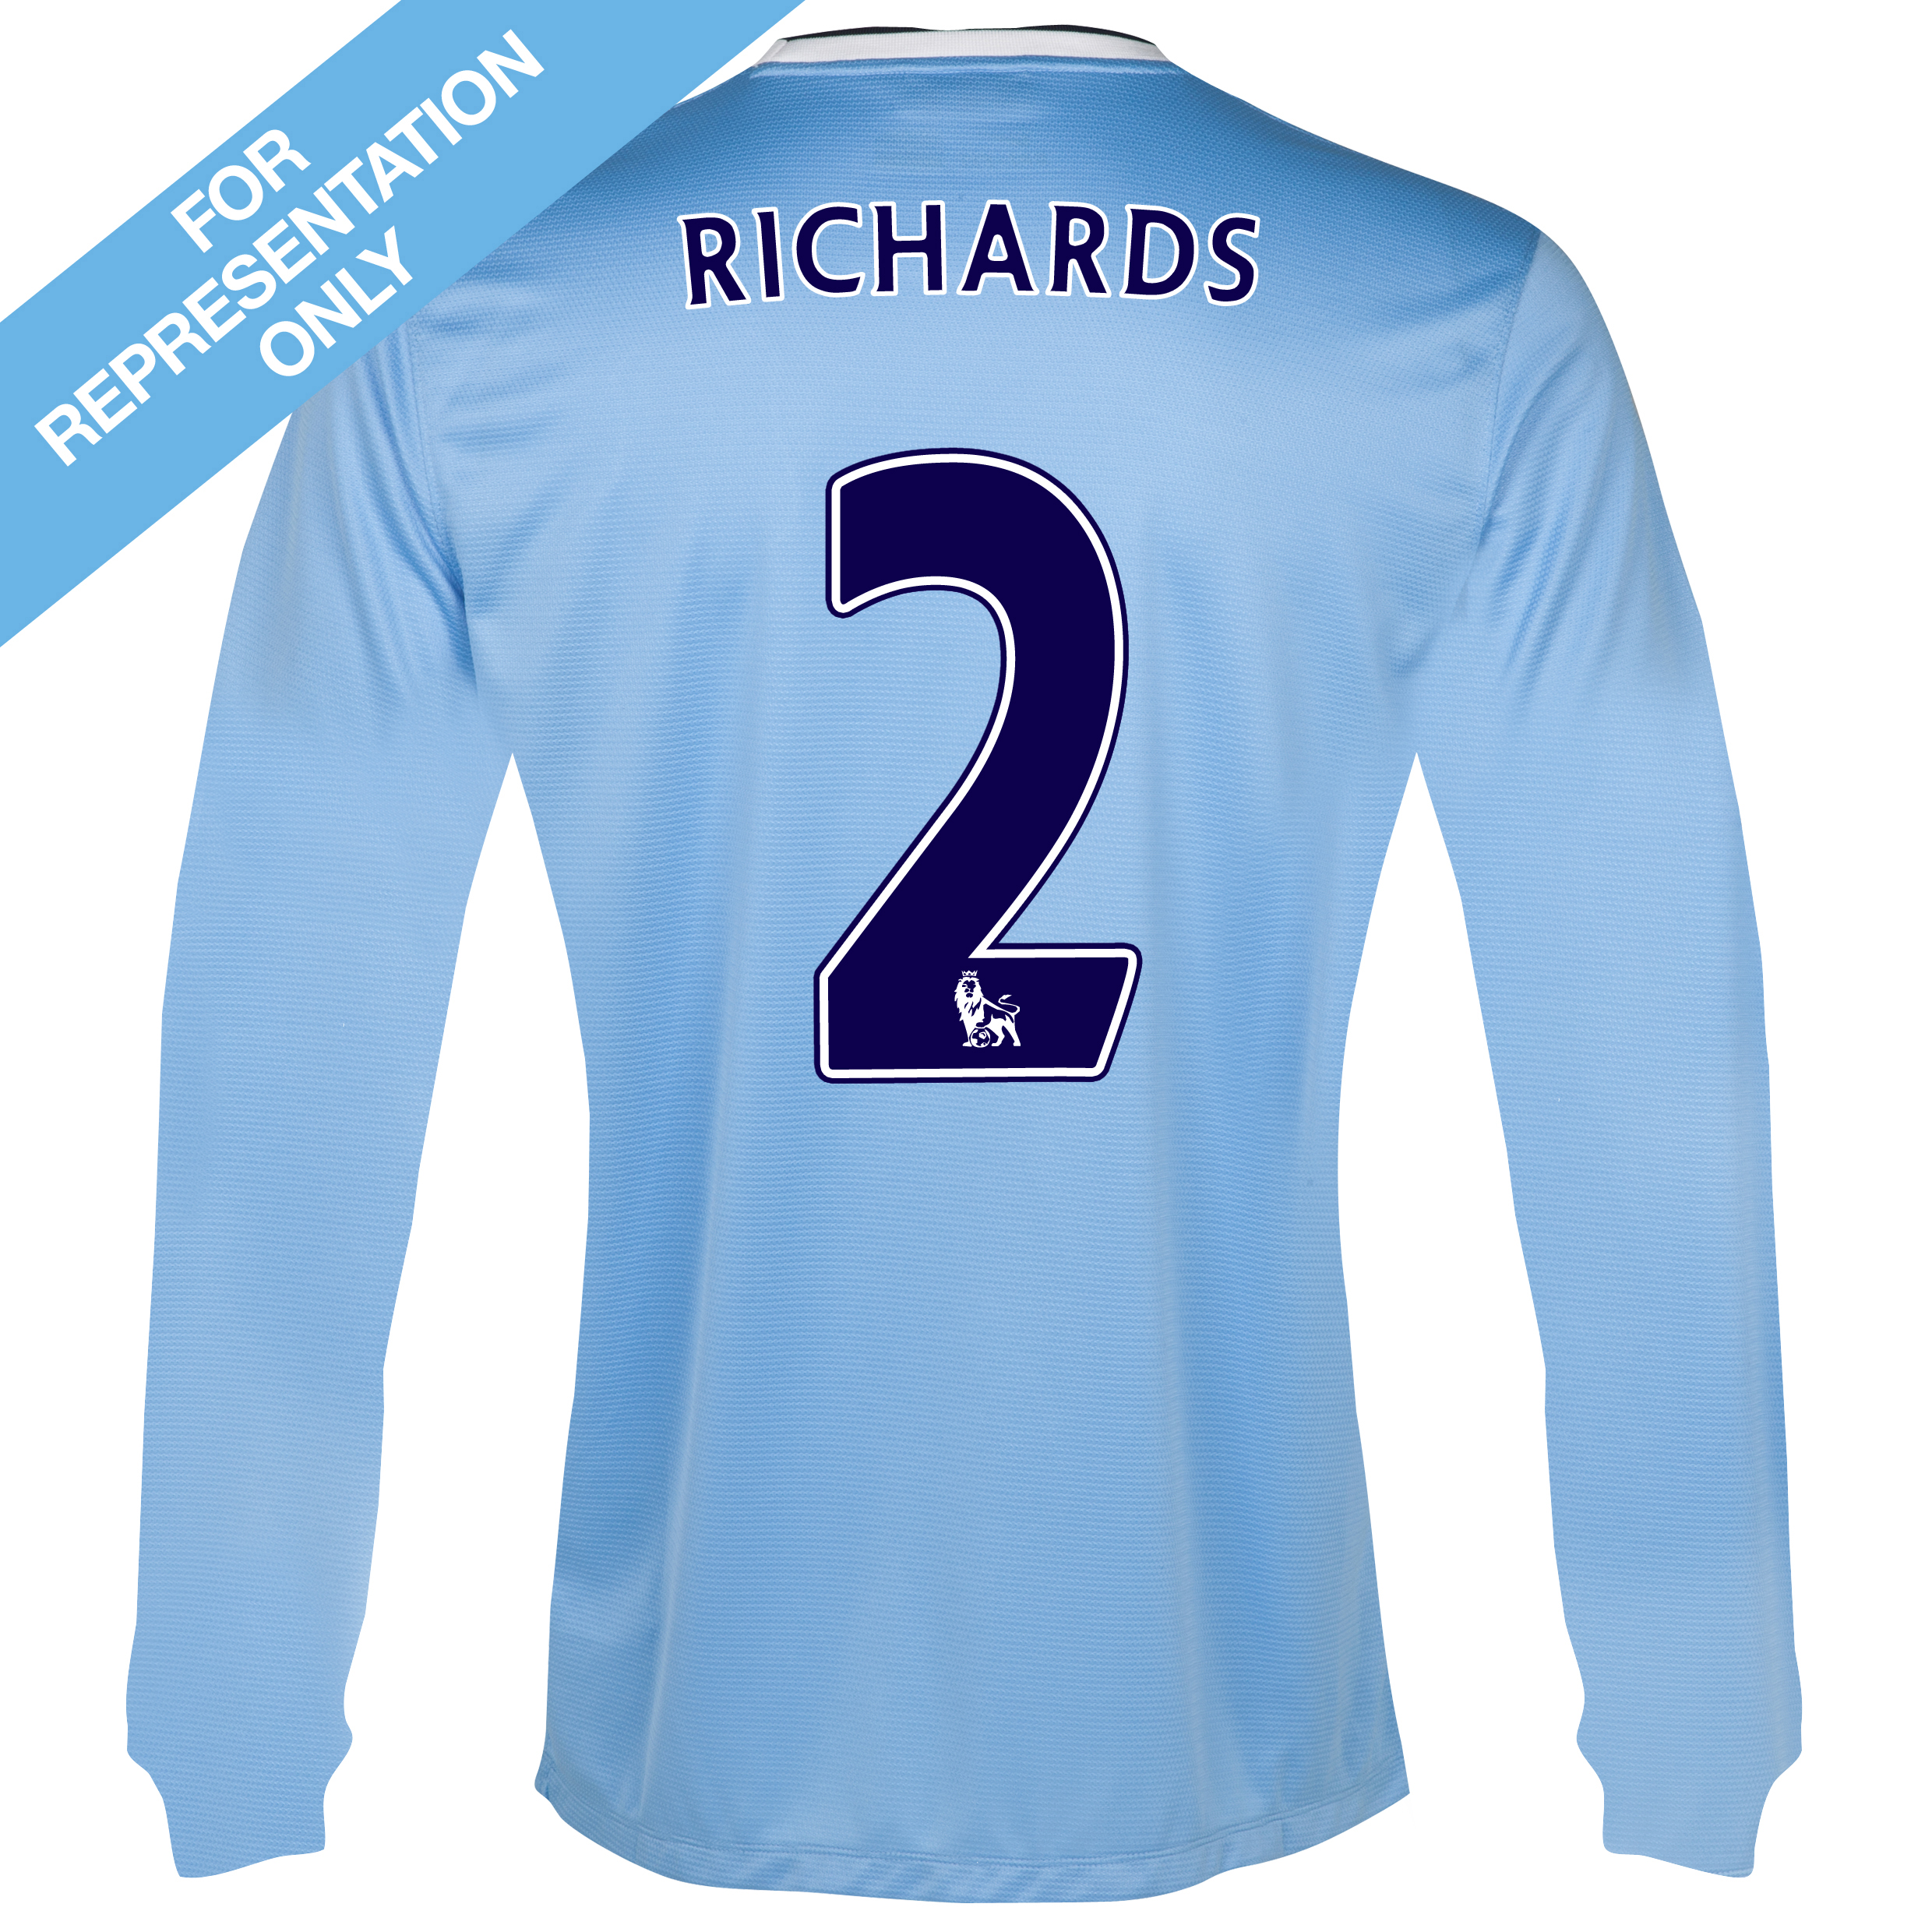 Manchester City Home Shirt 2013/14 - Long Sleeved with Richards 2 printing